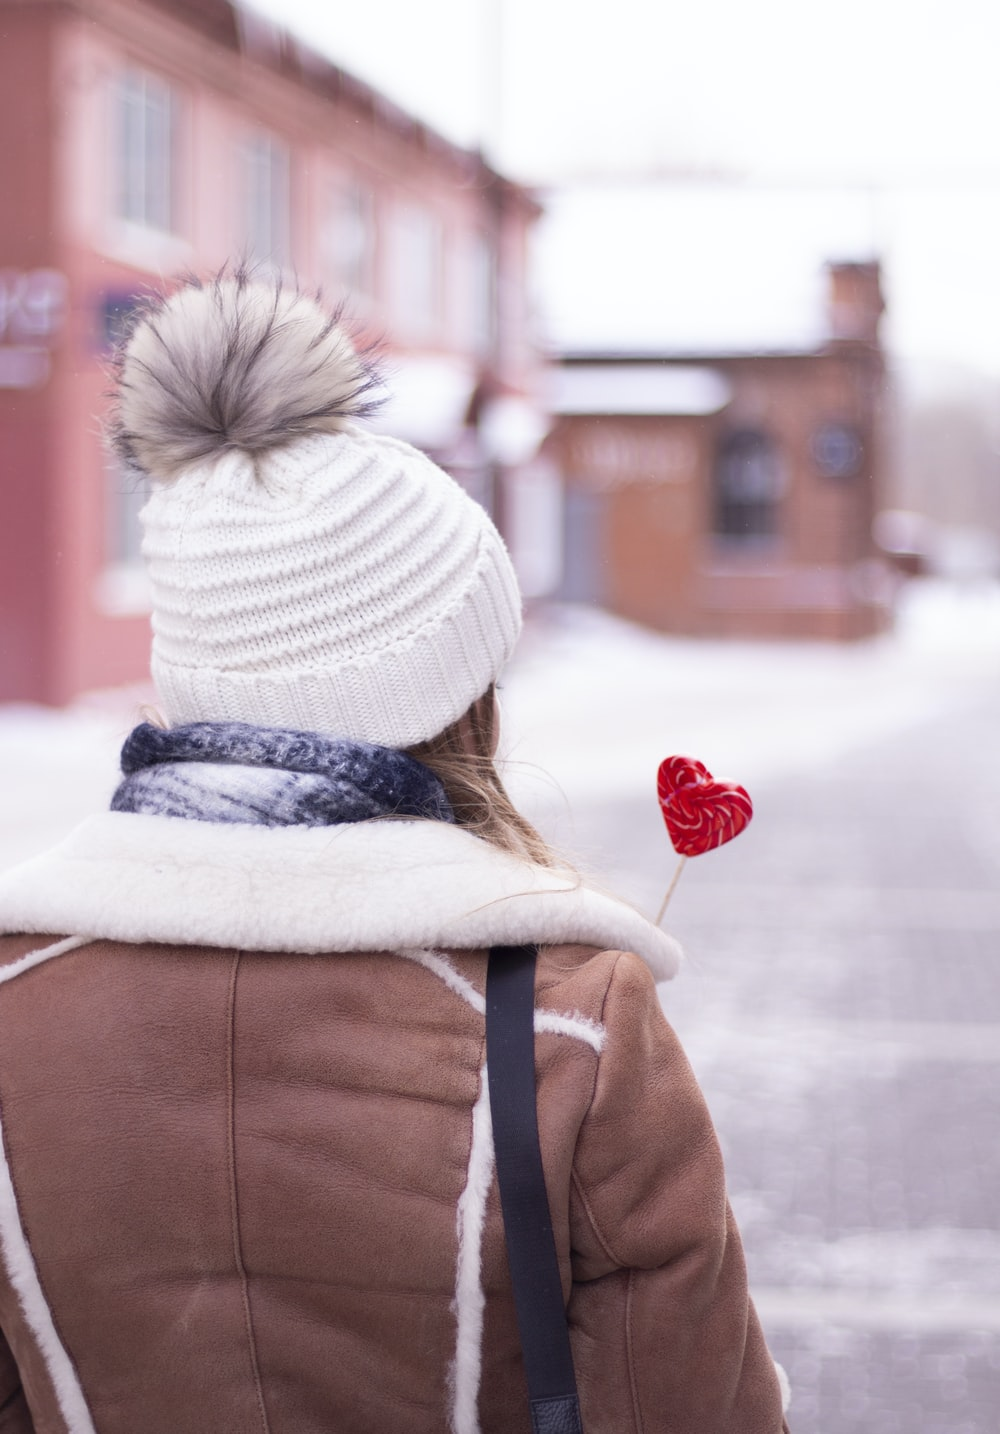 person in brown jacket and white knit cap holding red heart balloon